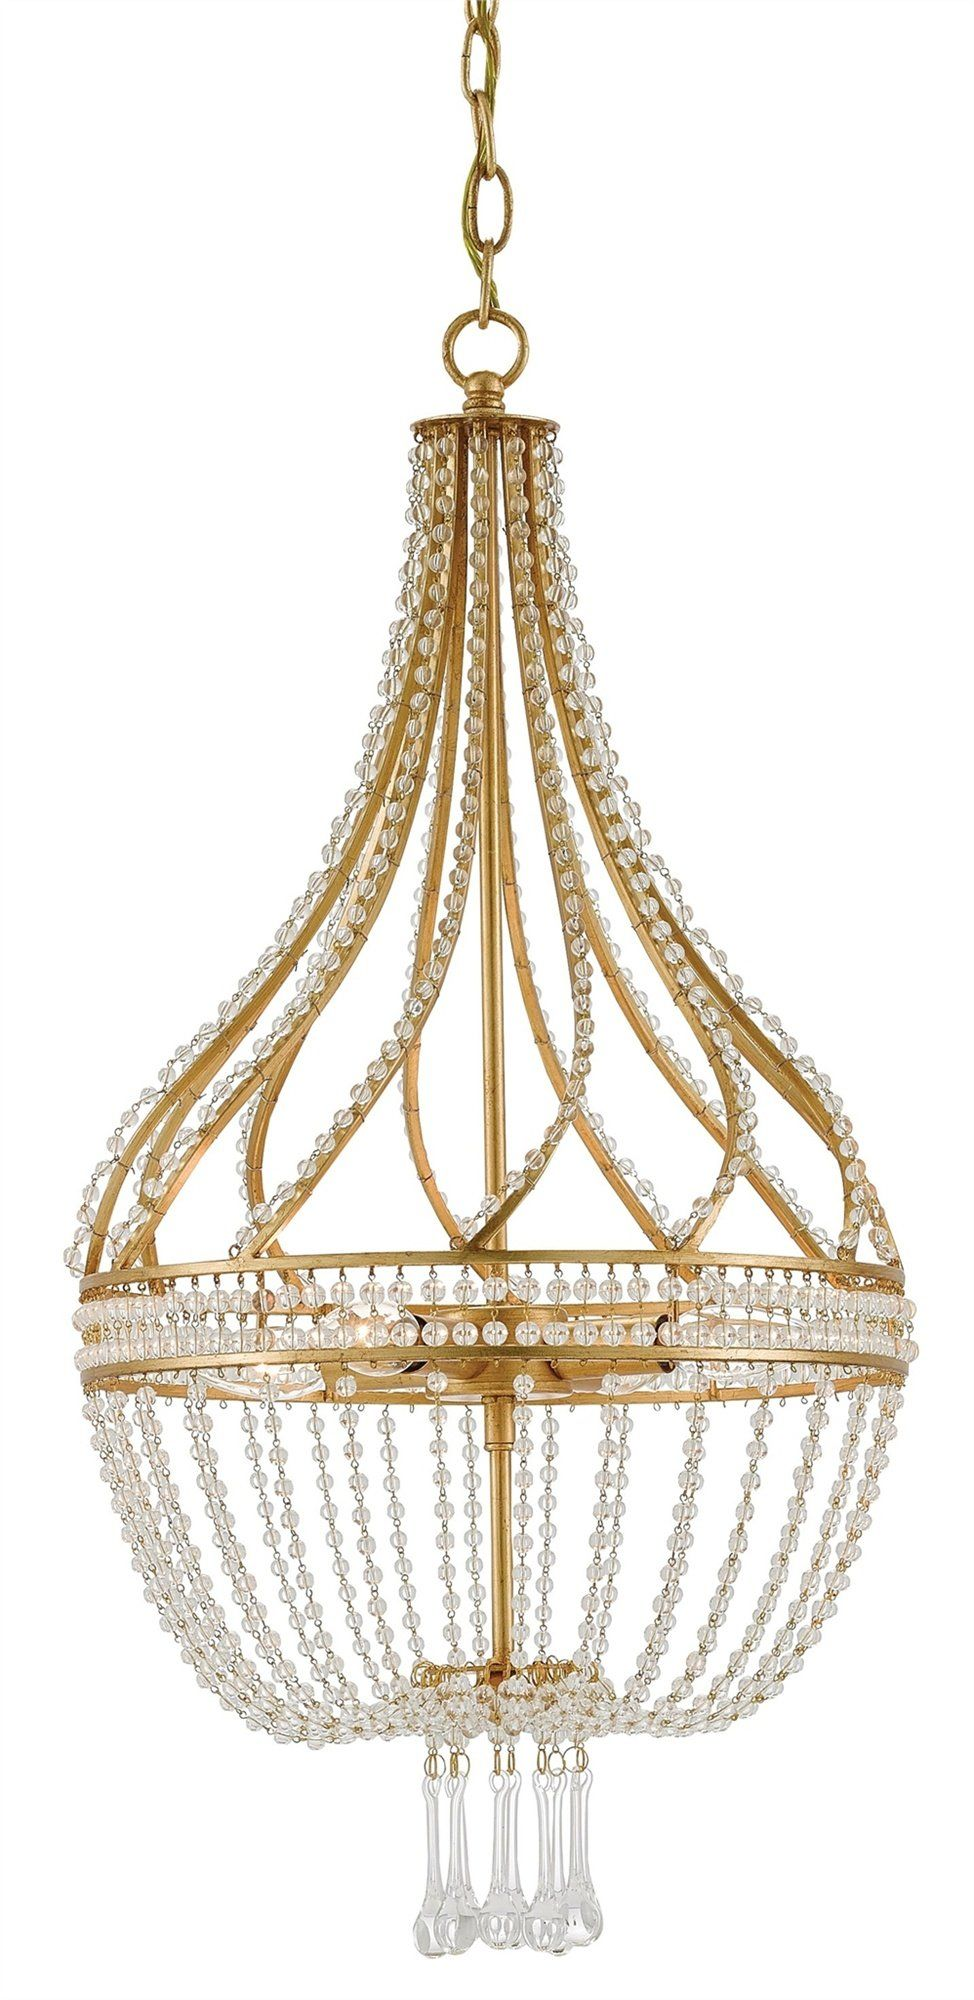 Currey And Company Inganue Chandelier 9000 0061 In 2020 Gold Chandelier Vintage Chandelier Silver Chandelier